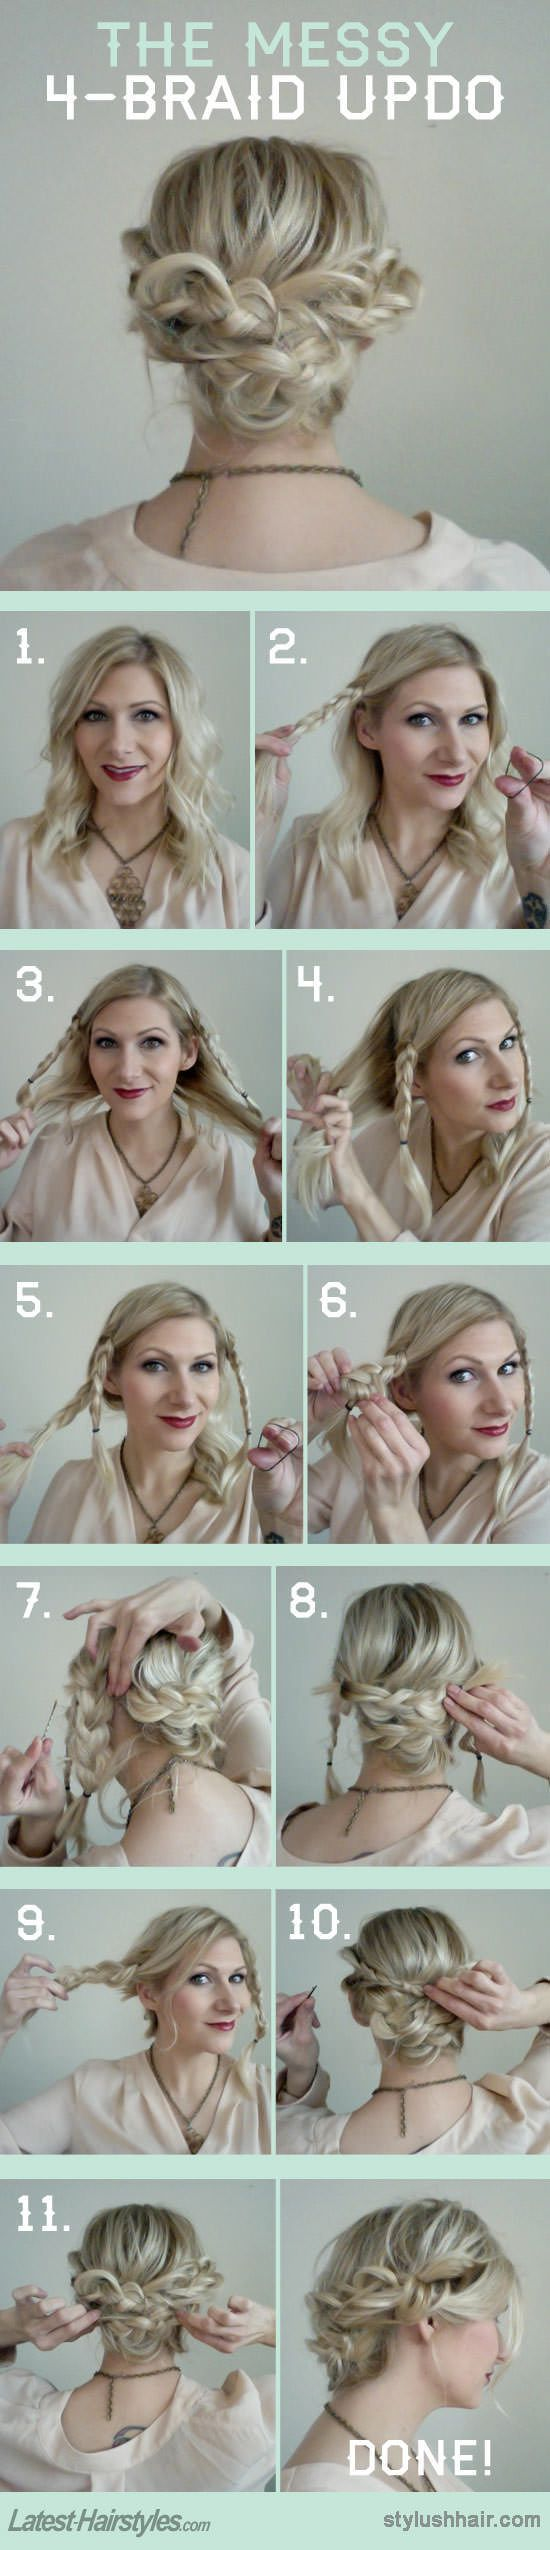 DIY Wedding Hairstyles to Try on Your Own  Part II  Latest